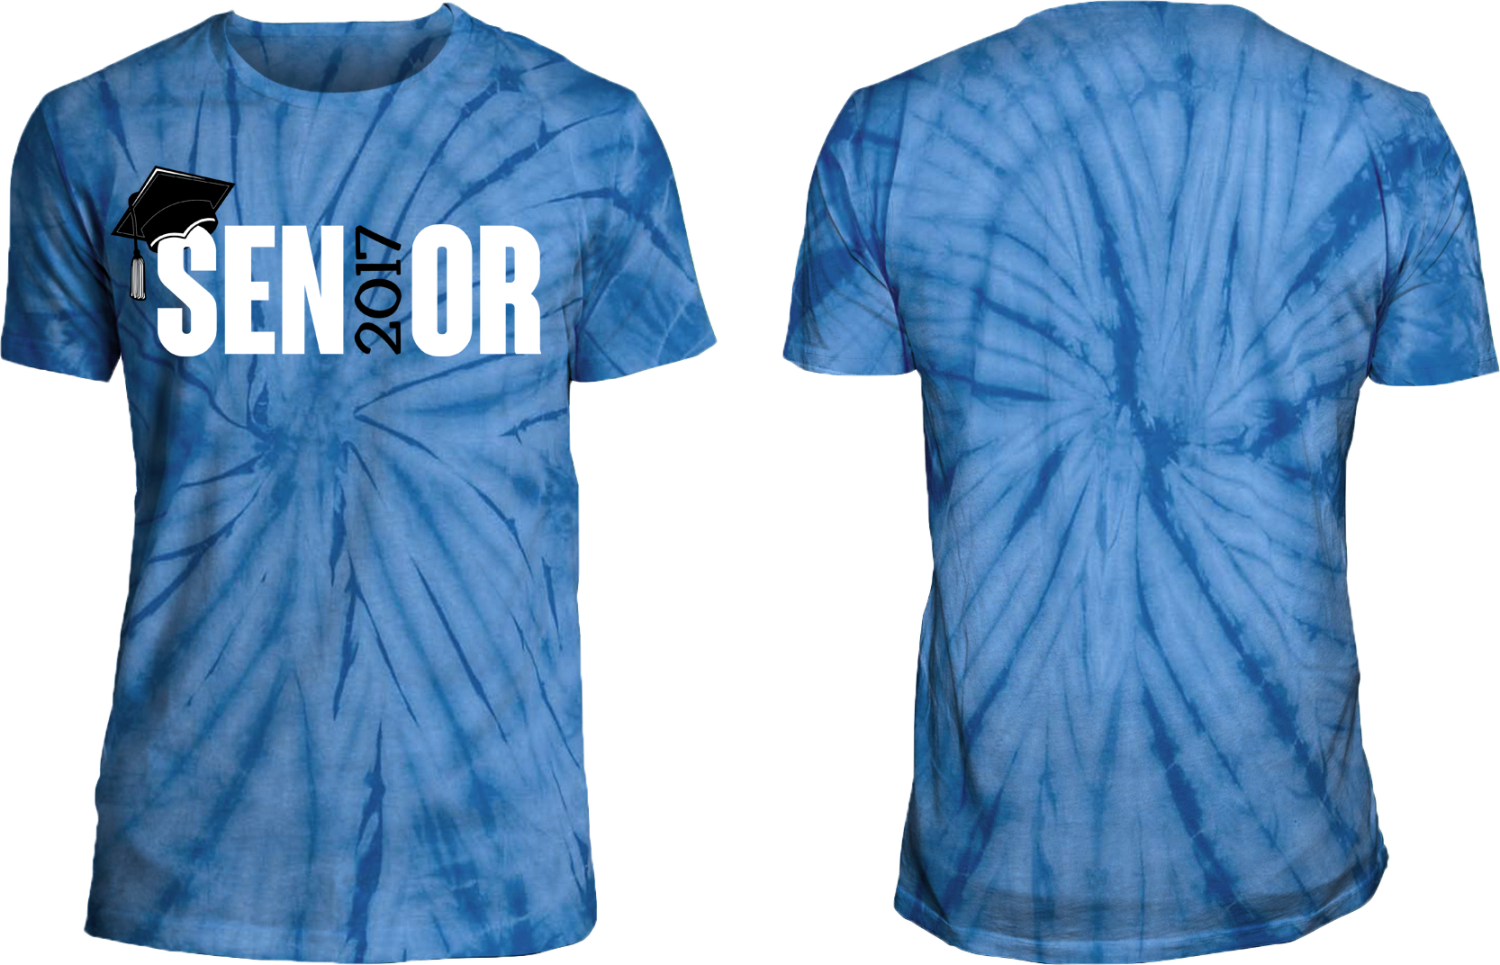 NCHS-Senior-Class---2017-Tie-Dye---Spider-Royal